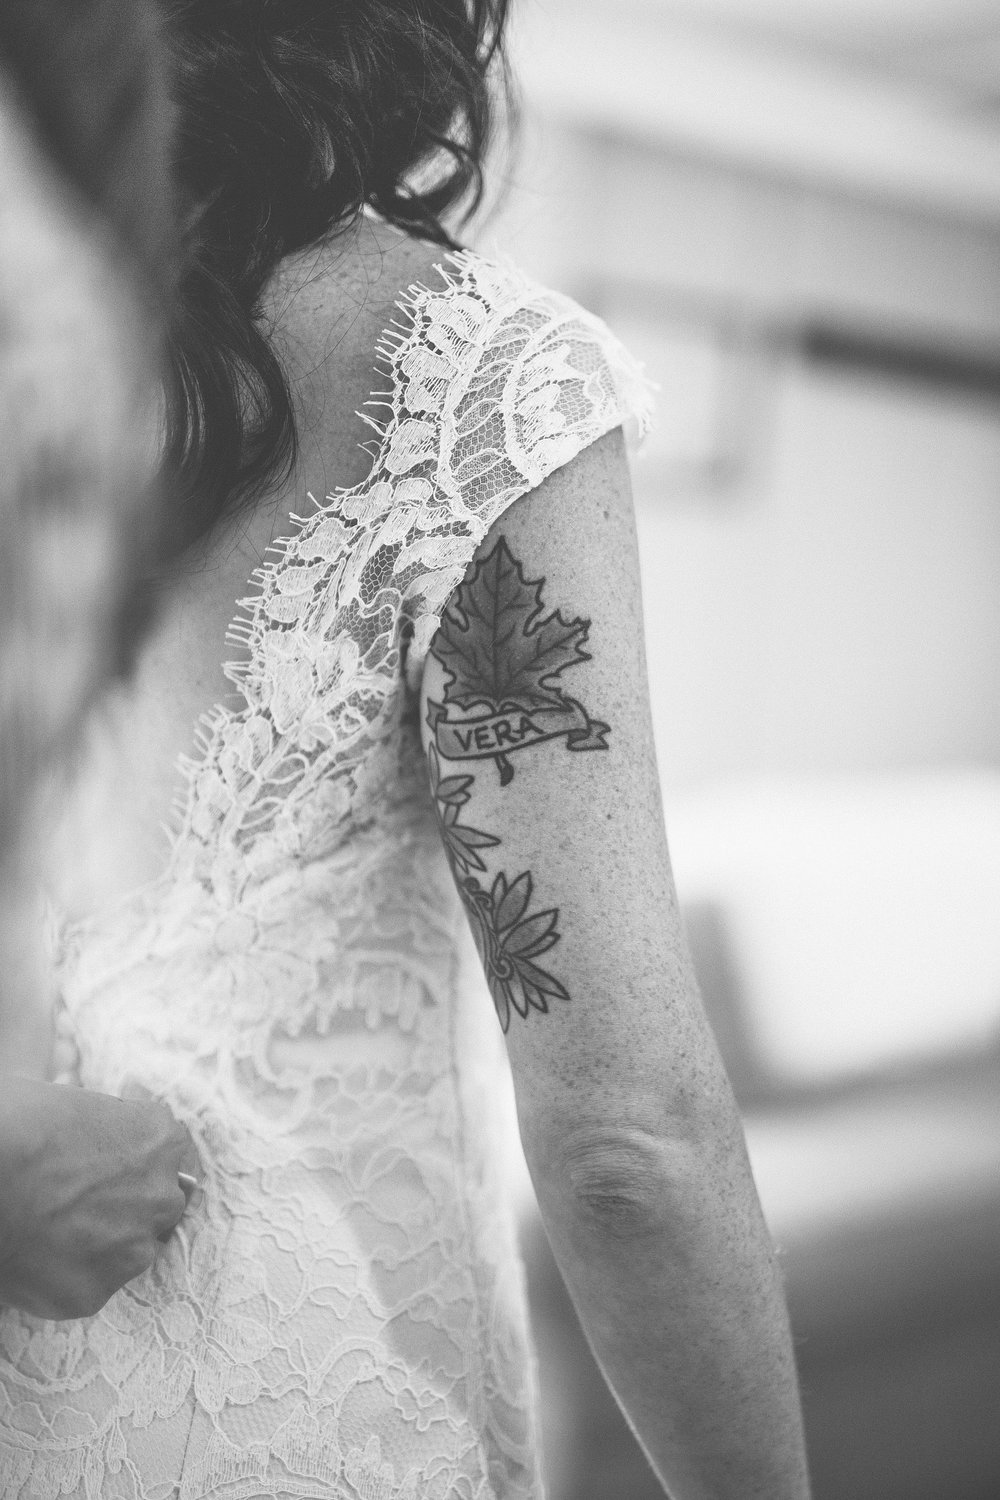 Mike+Holly+Brandon_Werth_Acowsay_Cinema_Wedding_Bride_Tatoos.jpg